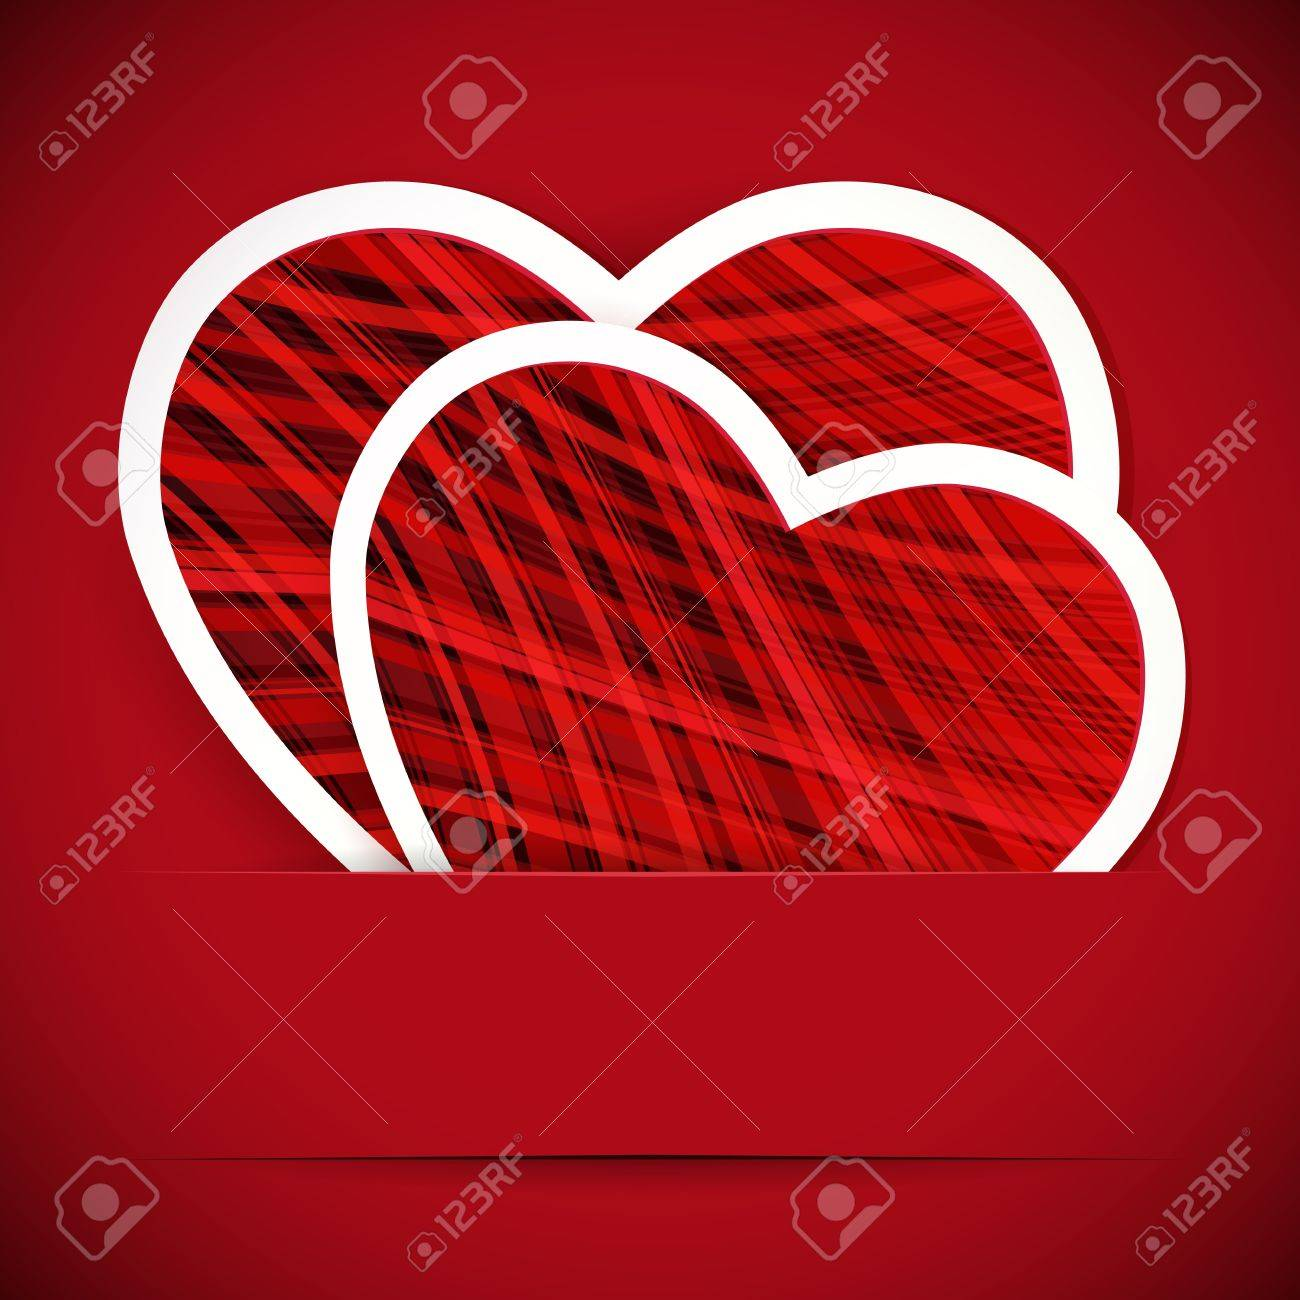 Two paper heartes postcard. Valentine's day vector background. Stock Vector - 17660237